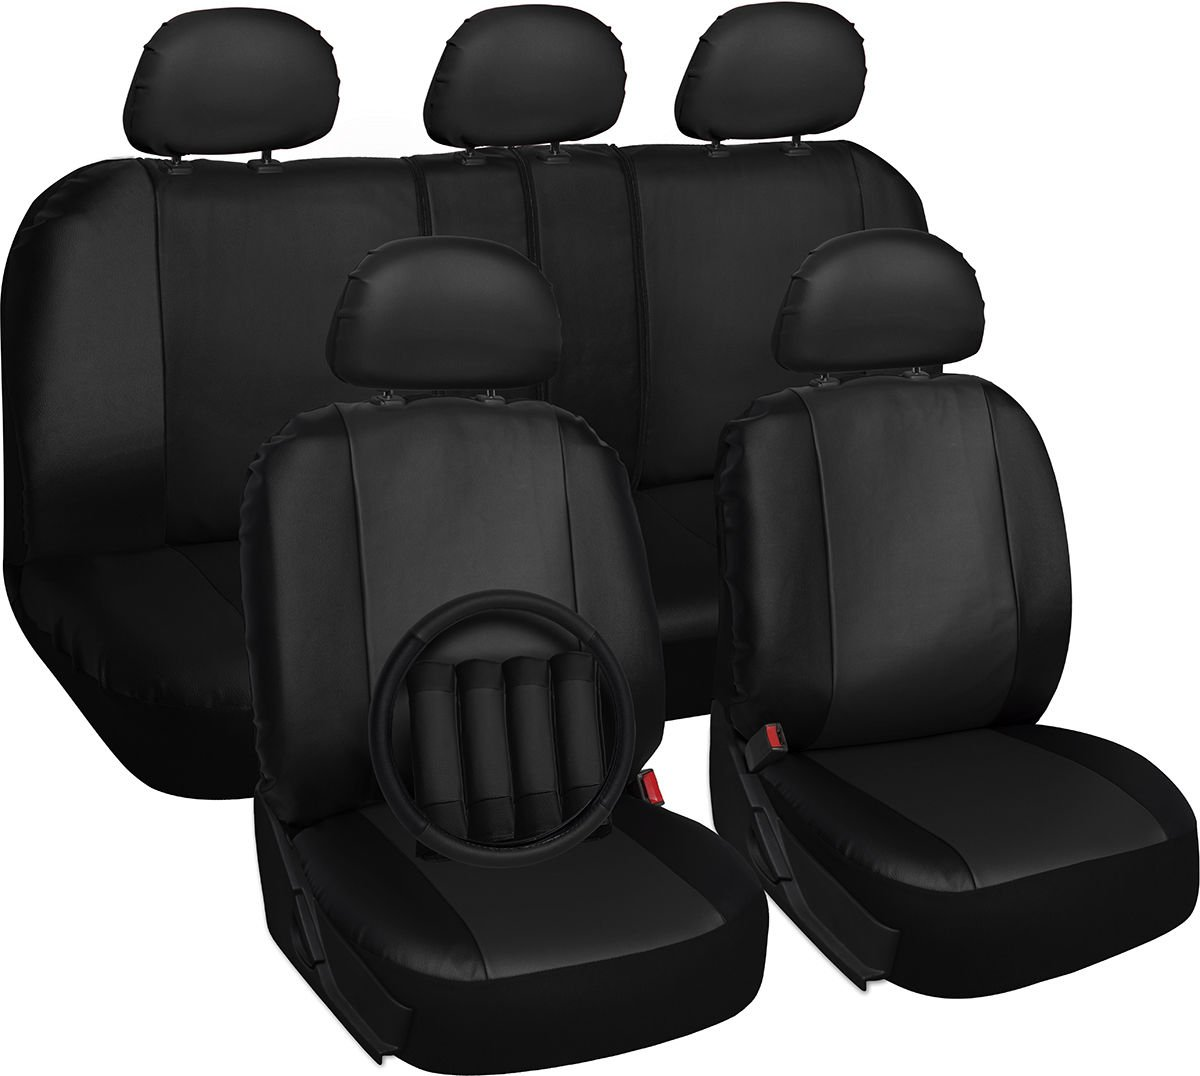 New Faux Leather Black Seat Cover for Hyundai Sonata w/Steering Wheel/Belt/Head Rest